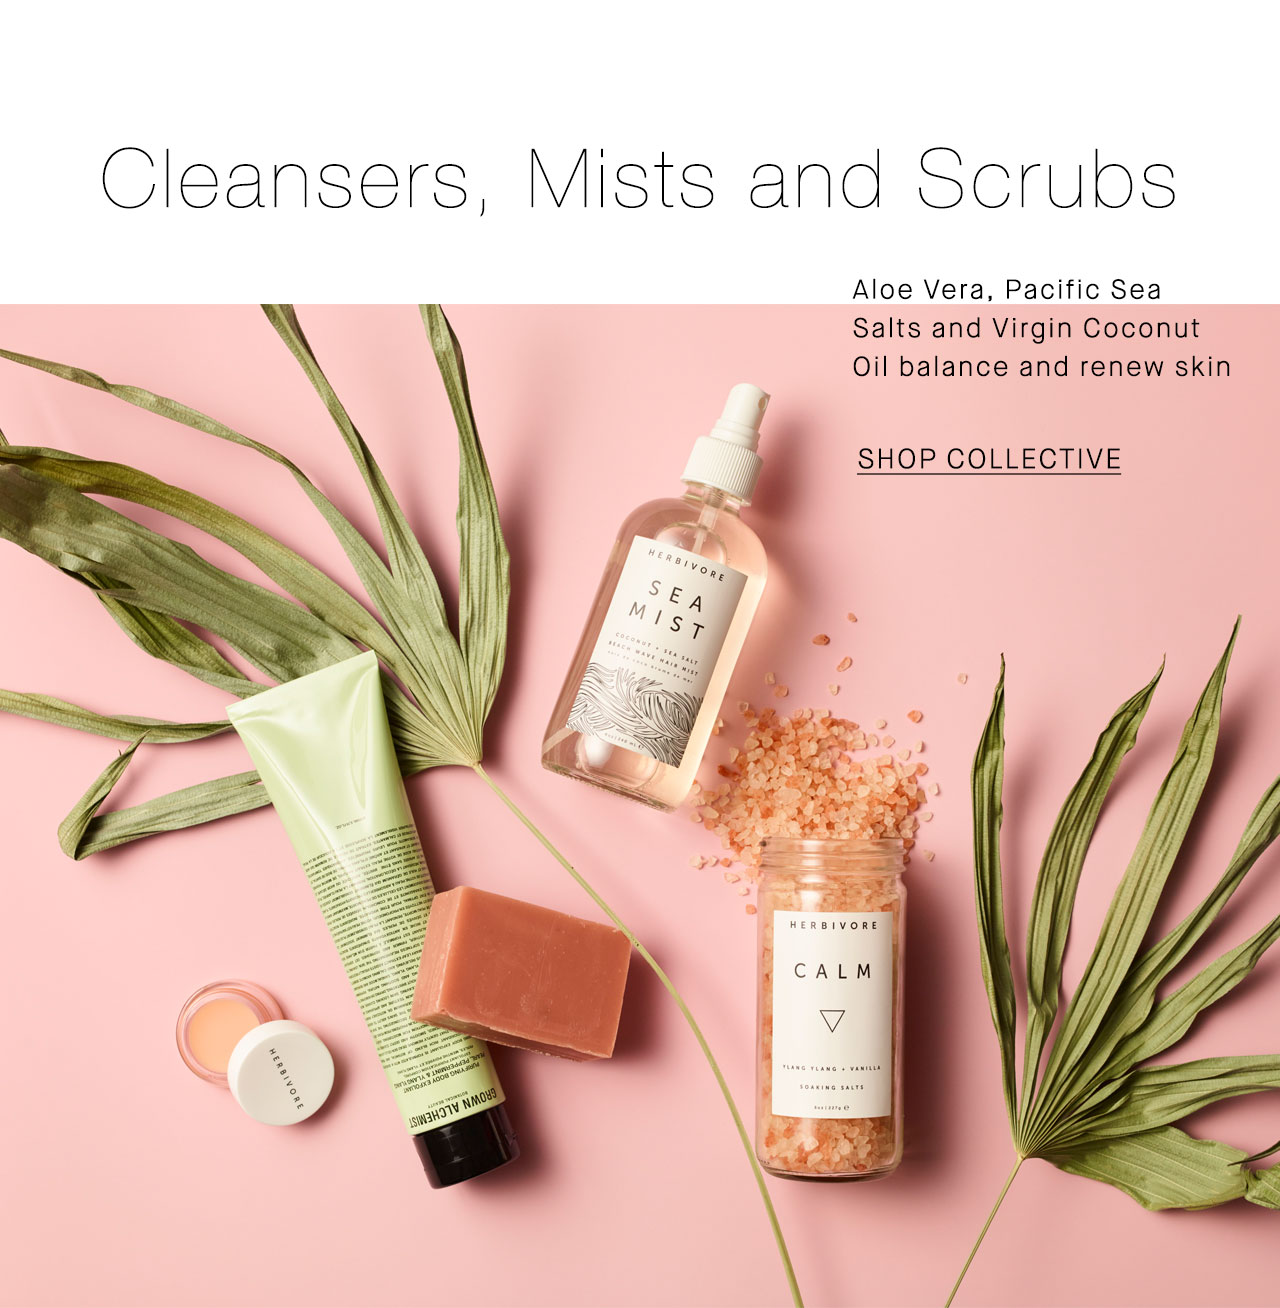 Cleansers, Mists and Scrubs